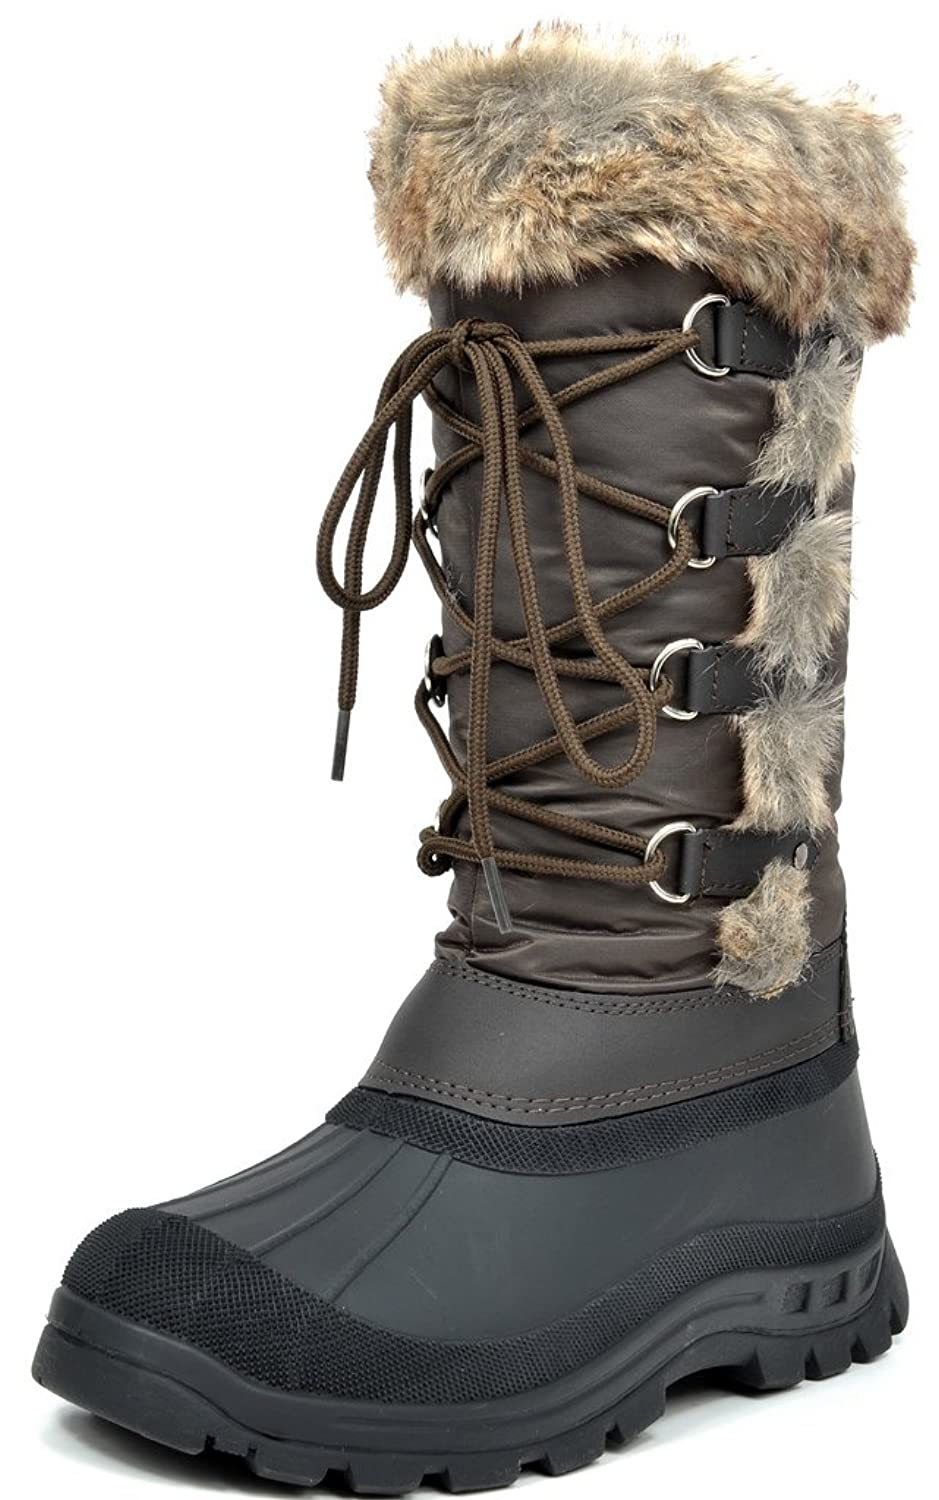 ARCTIV8 CATSKILL Women's Winter Knee High Fur Lining Cozy Warm Water Resistant Snow Boots